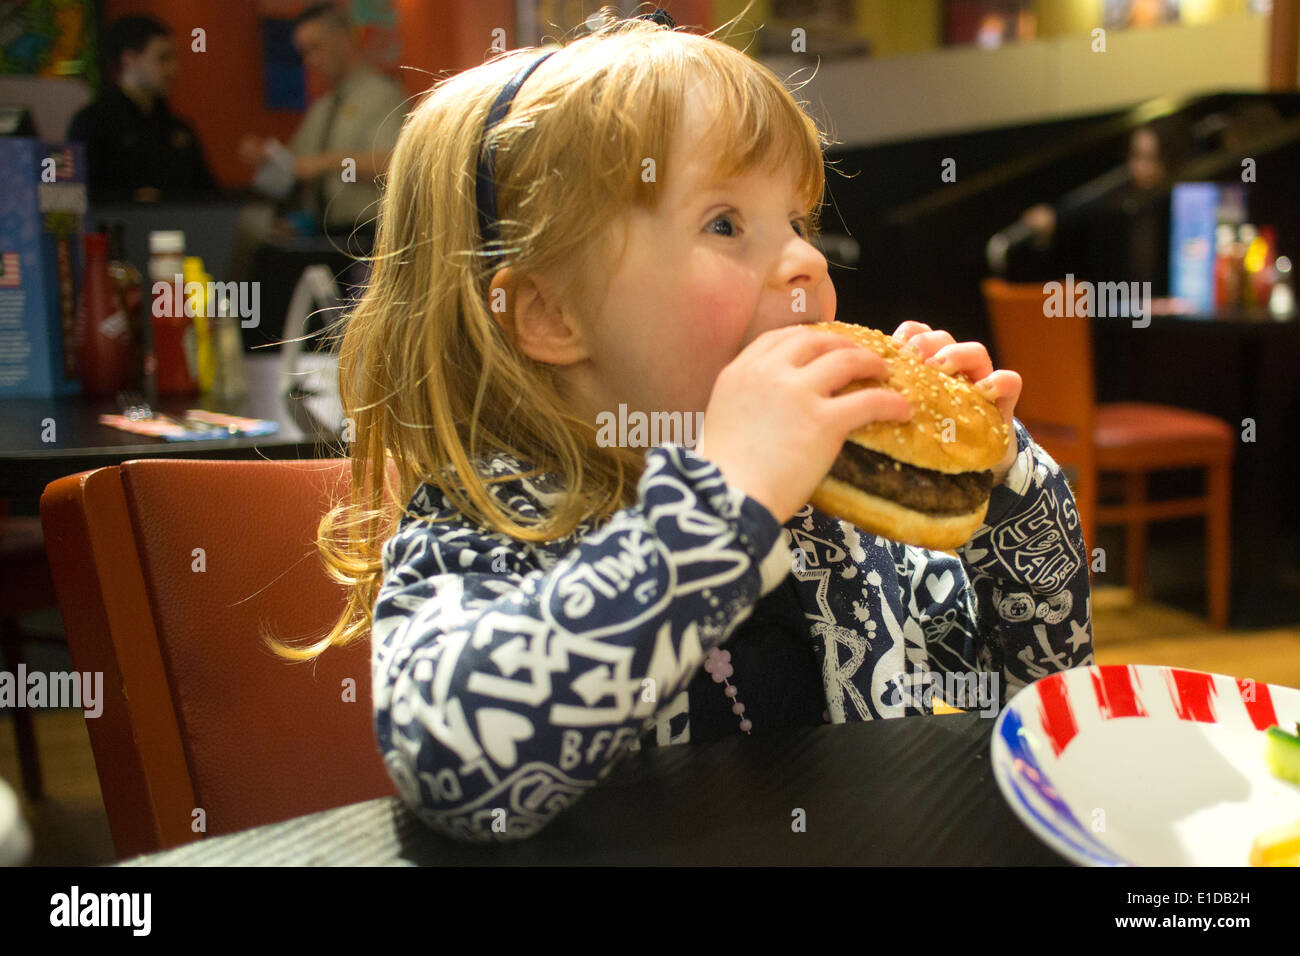 Four 4 year old girl in restaurant eating cheese burger Stock Photo